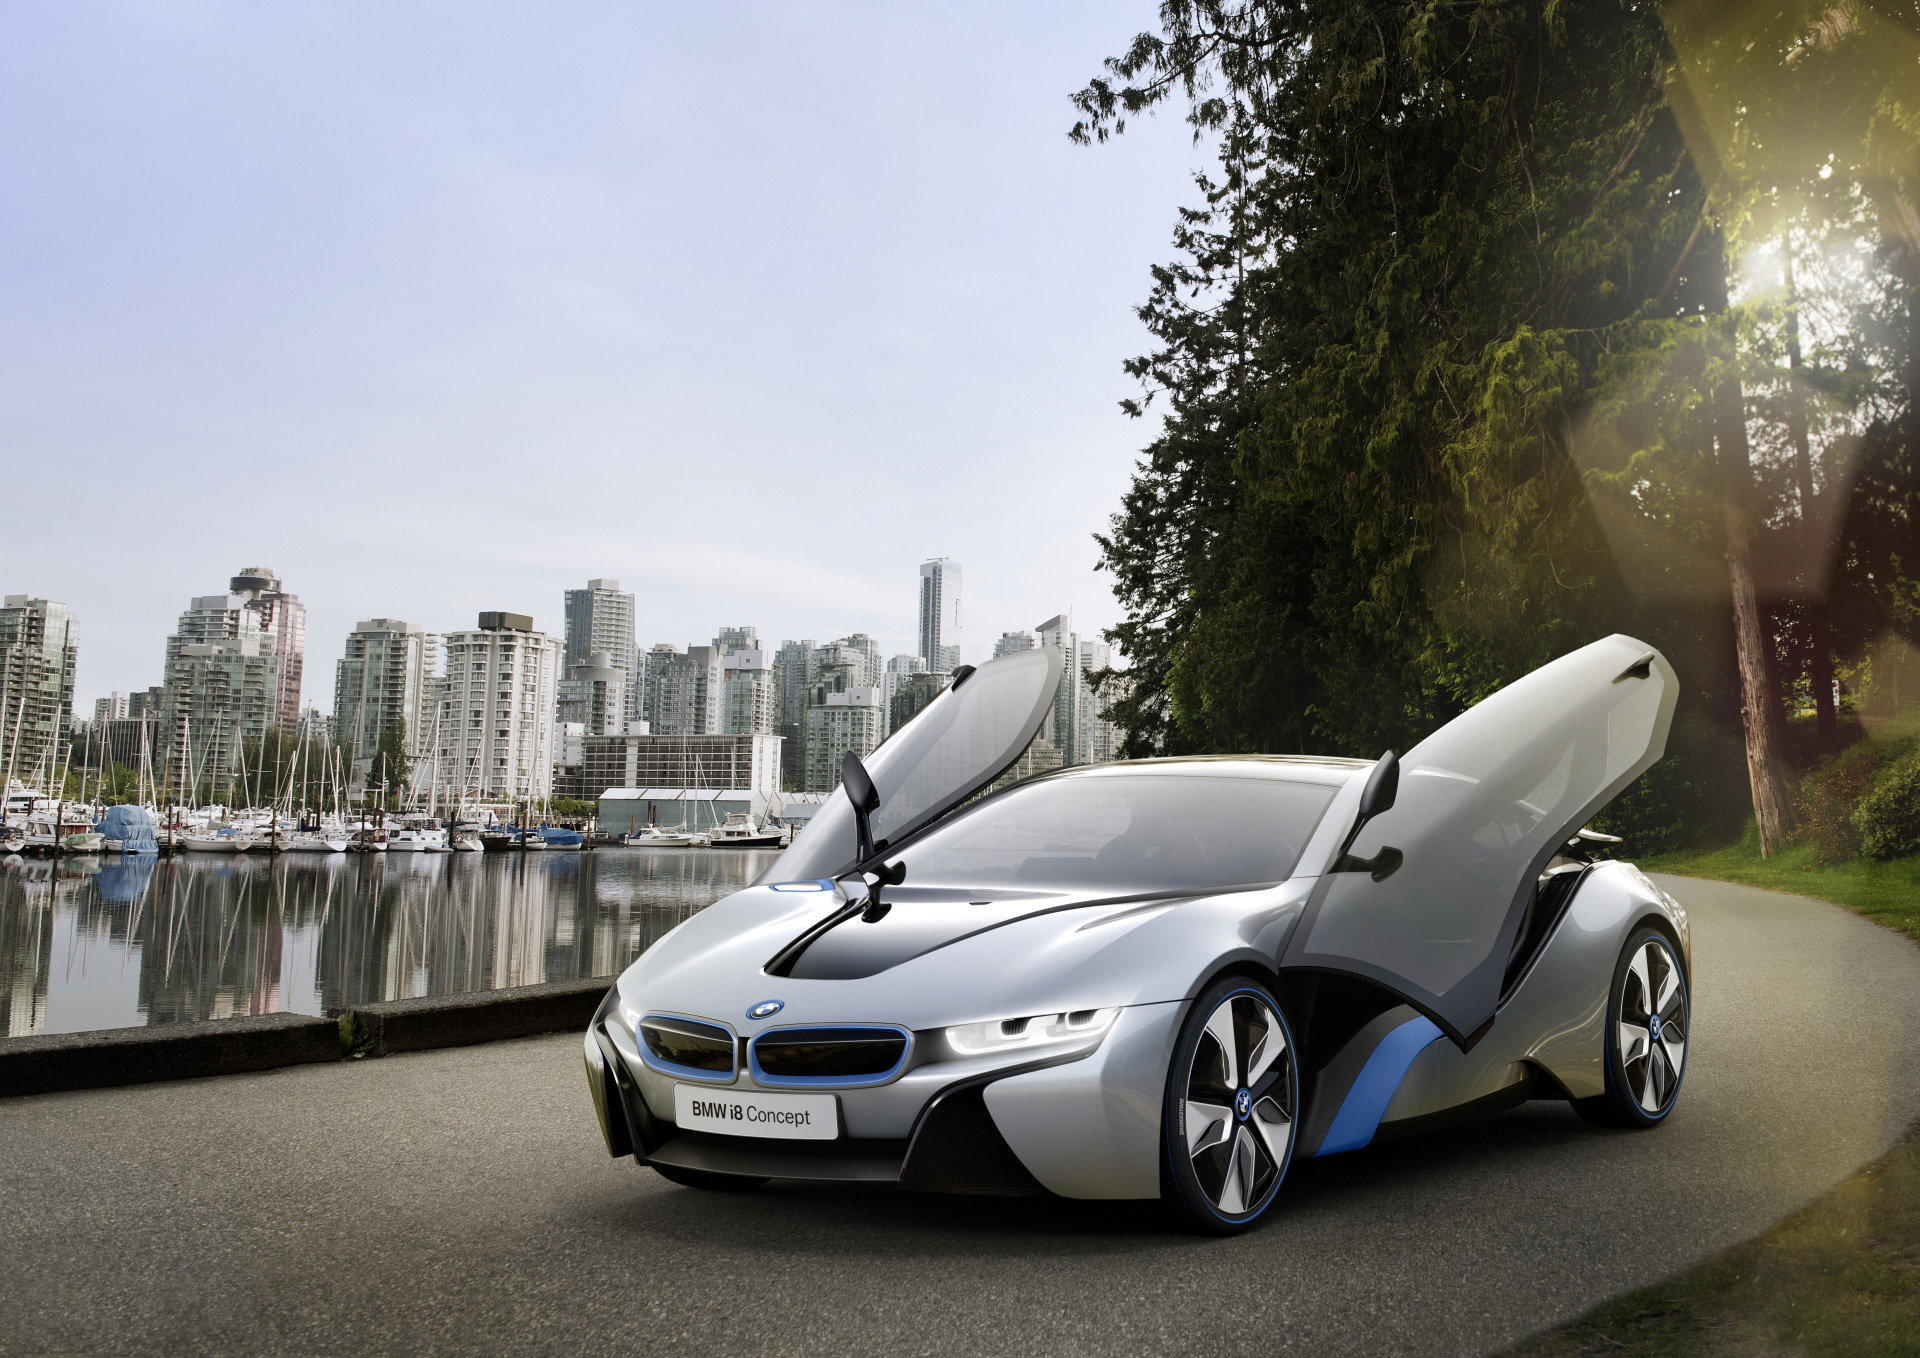 Bmw I A New Understanding Of Mobility 2012 bmw i8 i3 concept cars 6